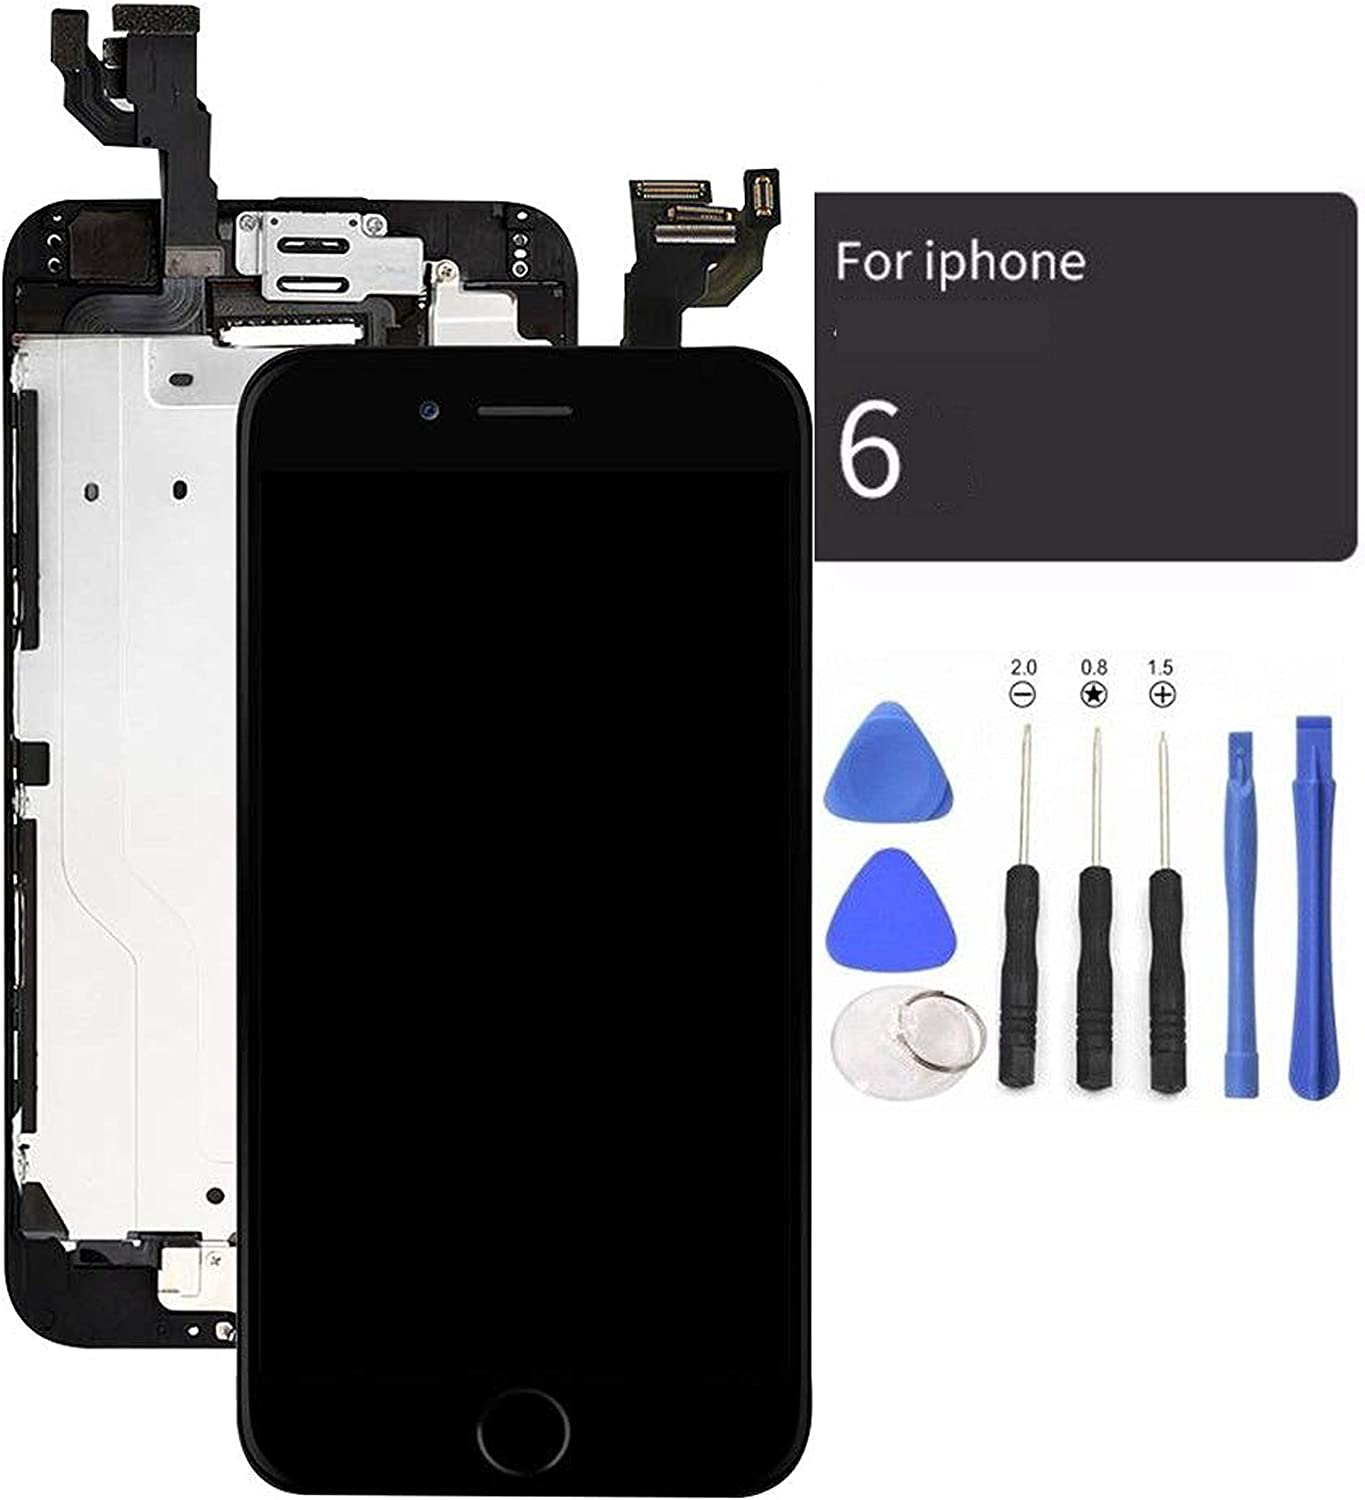 passionTR Black LCD Screen Replacement for iPhone 6 Plus 5.5 Inch with Camera Home Button Ear Speaker Proximity Sensor Full Complete Assembly Digitizer Display with Repair Tool kit